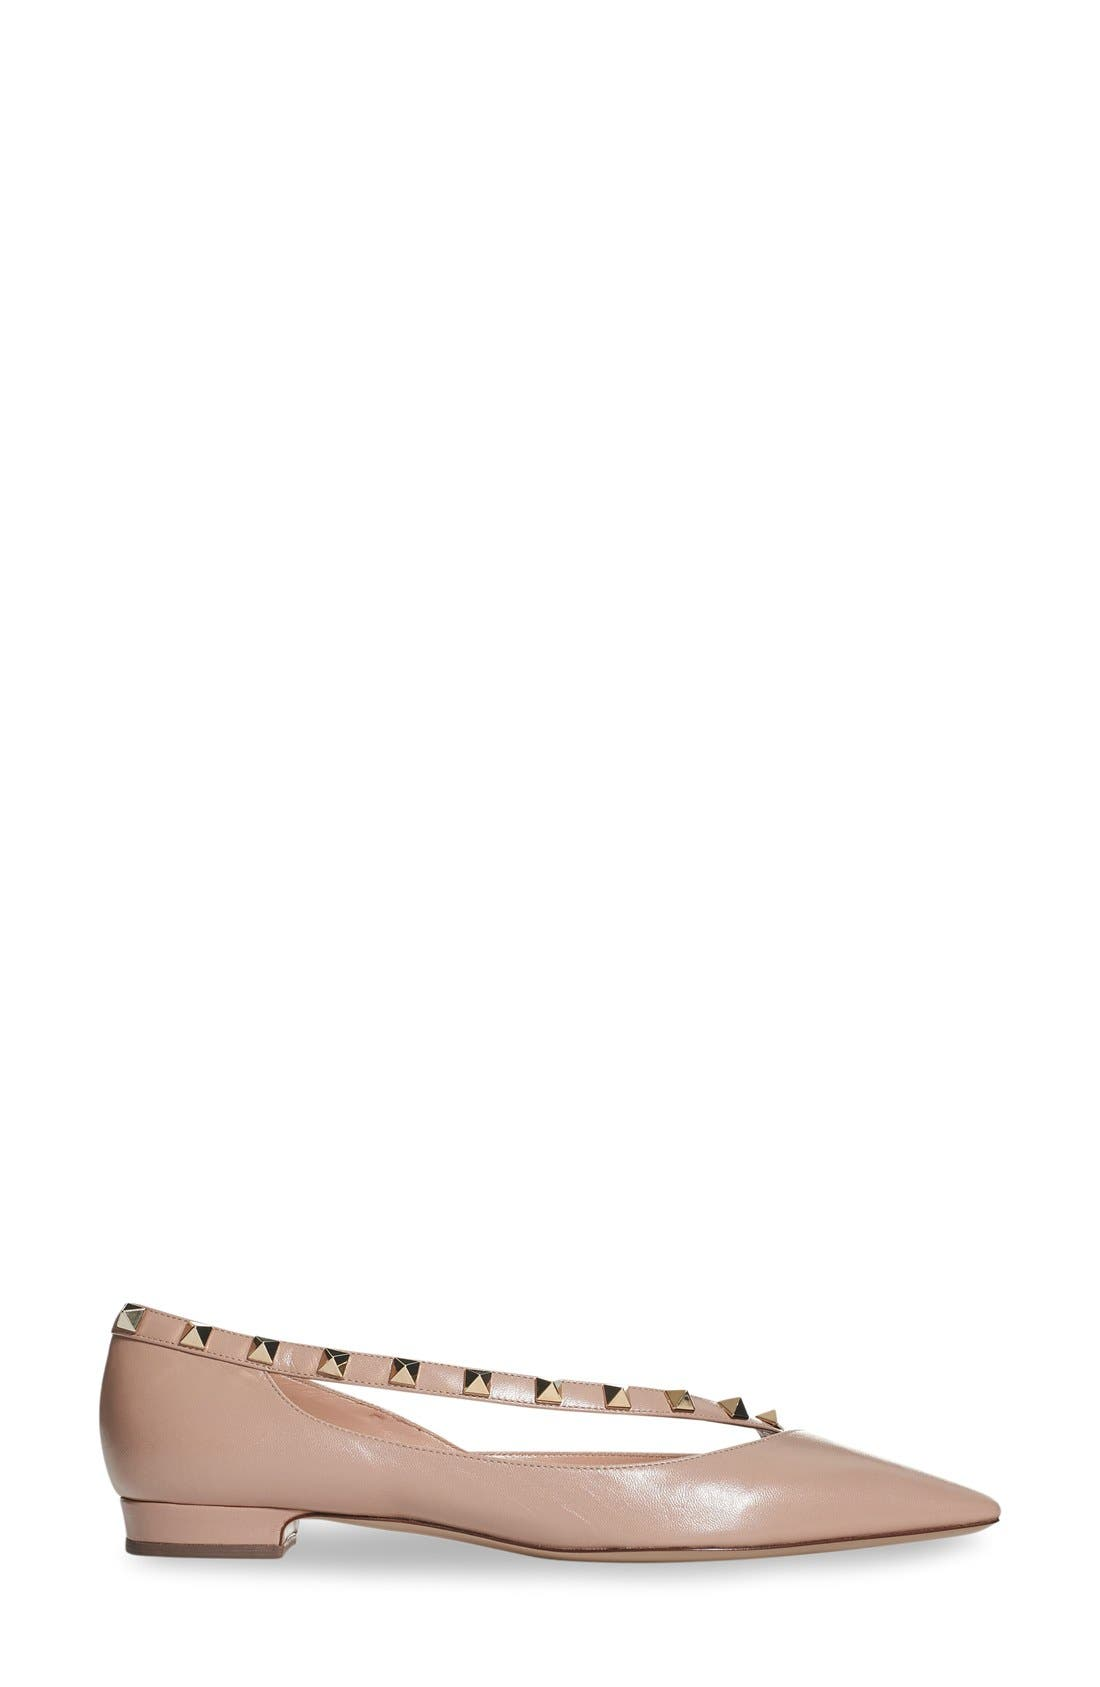 'Rockstud' Demi d'Orsay Flat,                             Alternate thumbnail 4, color,                             250